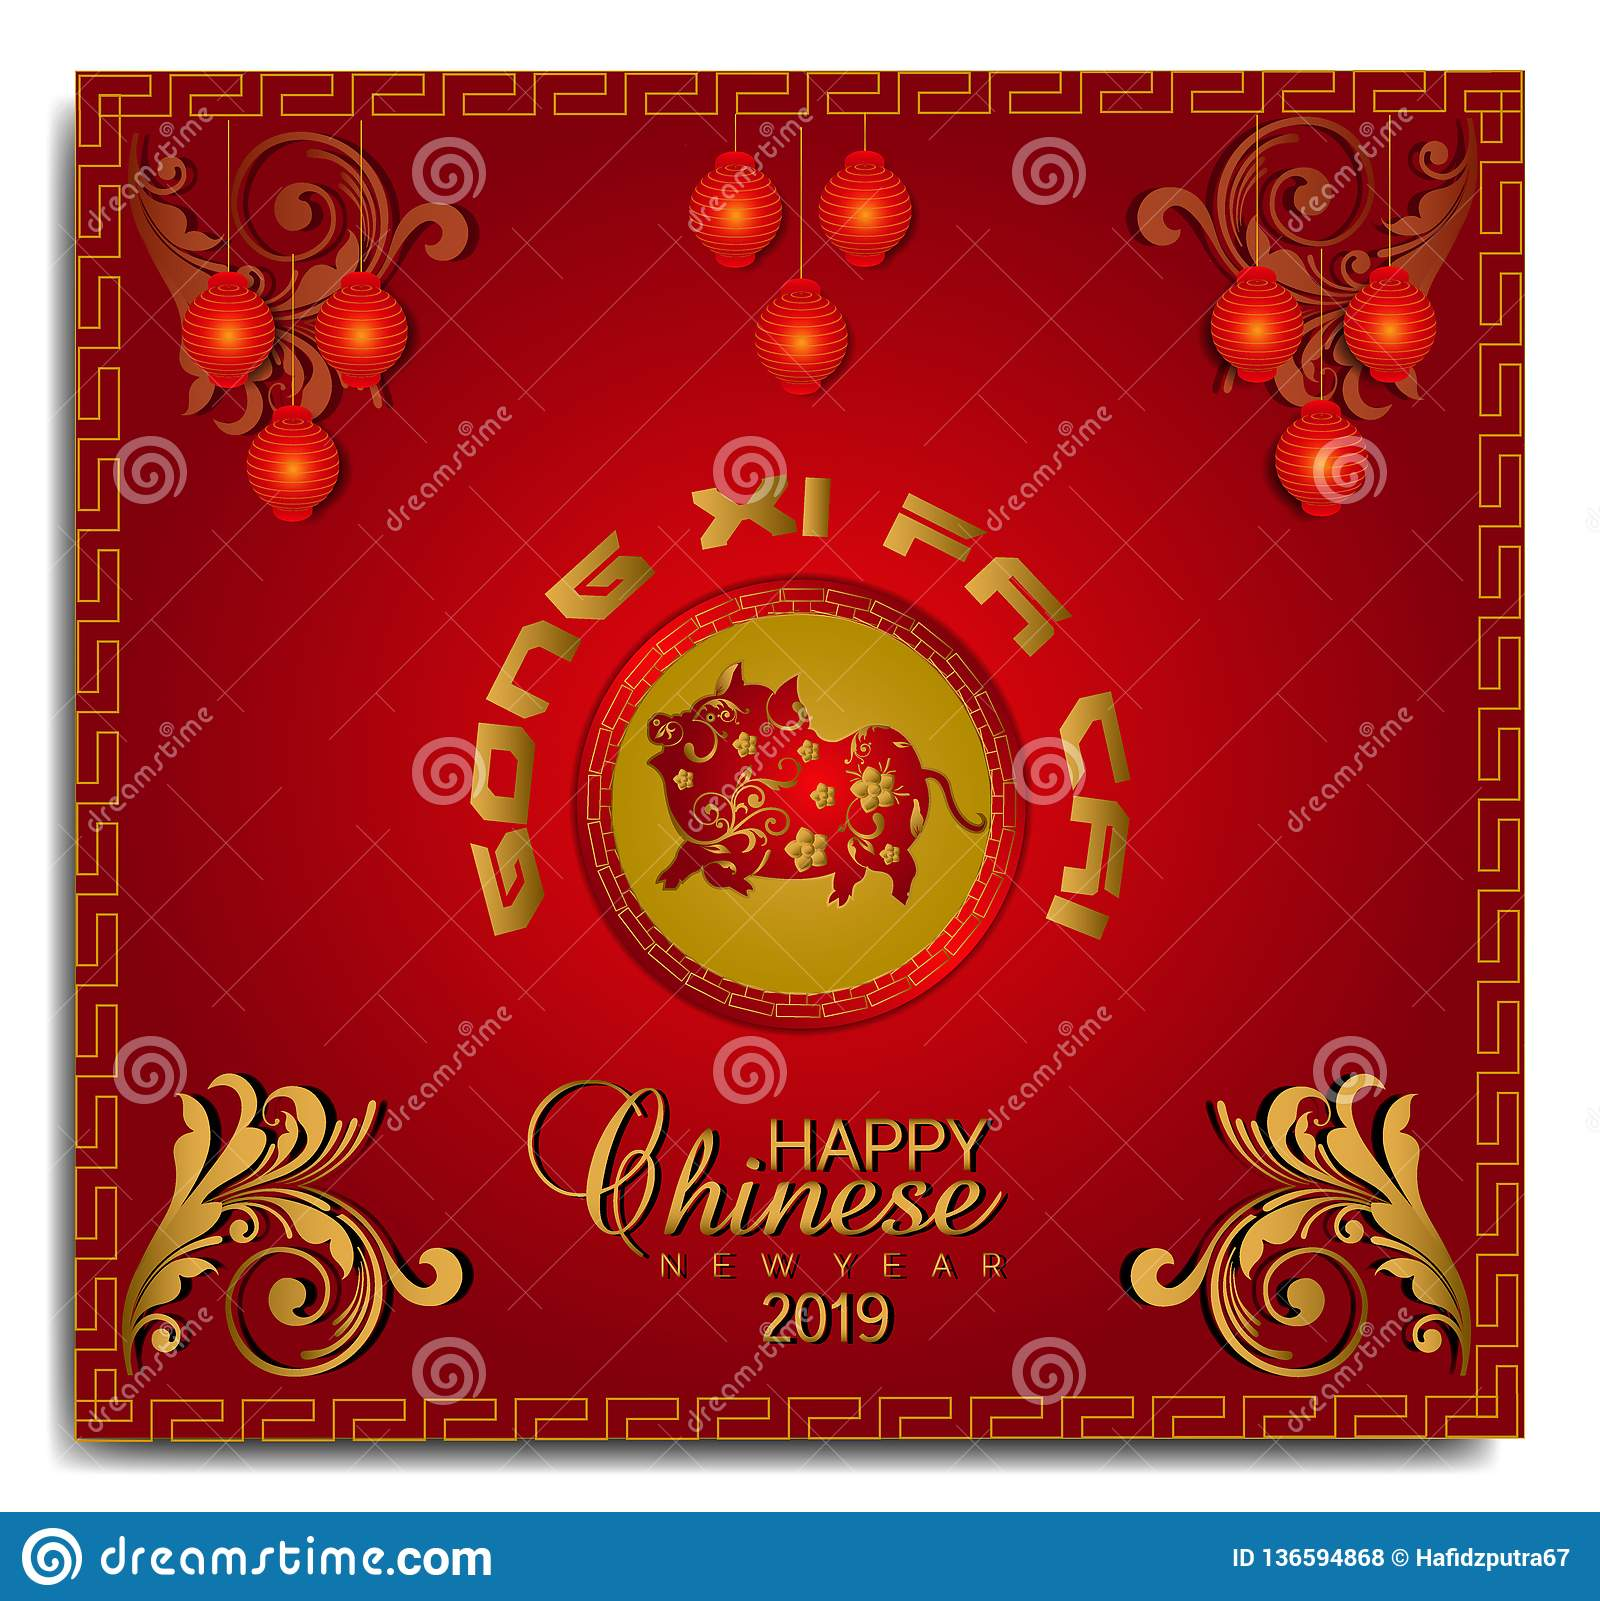 CHINESE NEW YEAR 2019 BACKGROUNDS